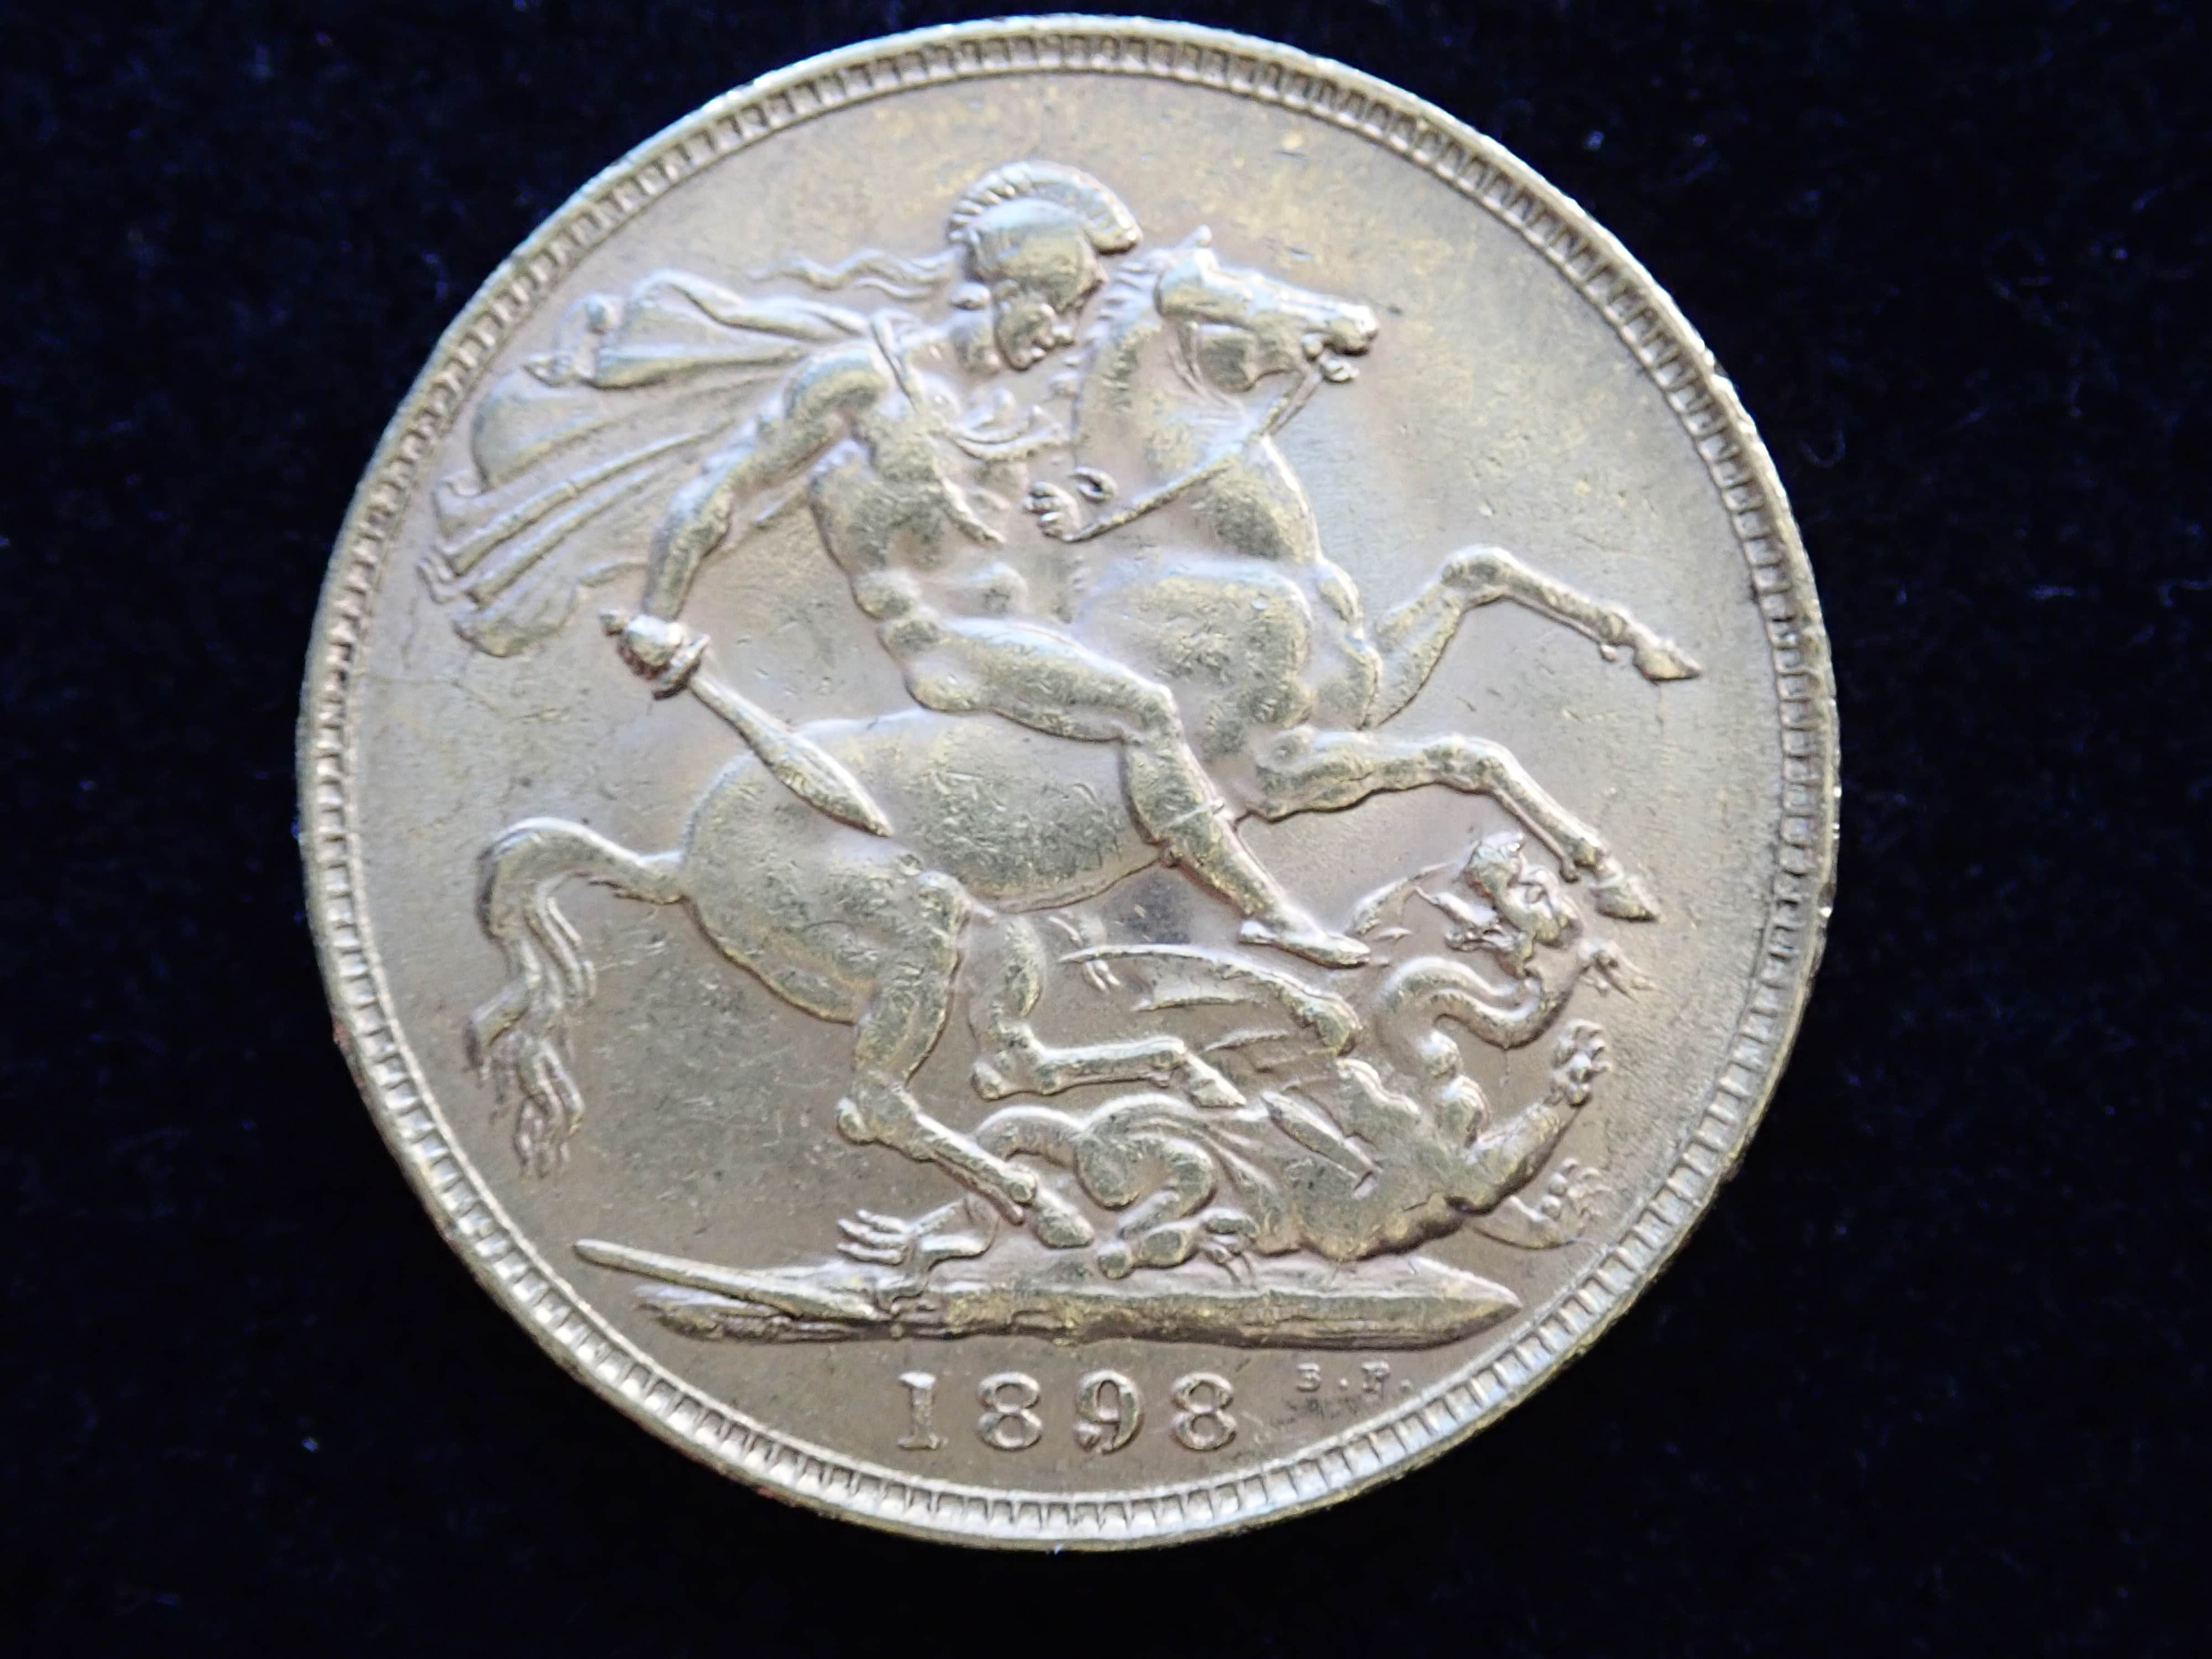 AA000800 - 1898 Gold Coin Full Sovereign - Queen Victoria Old Head - London Mint #355